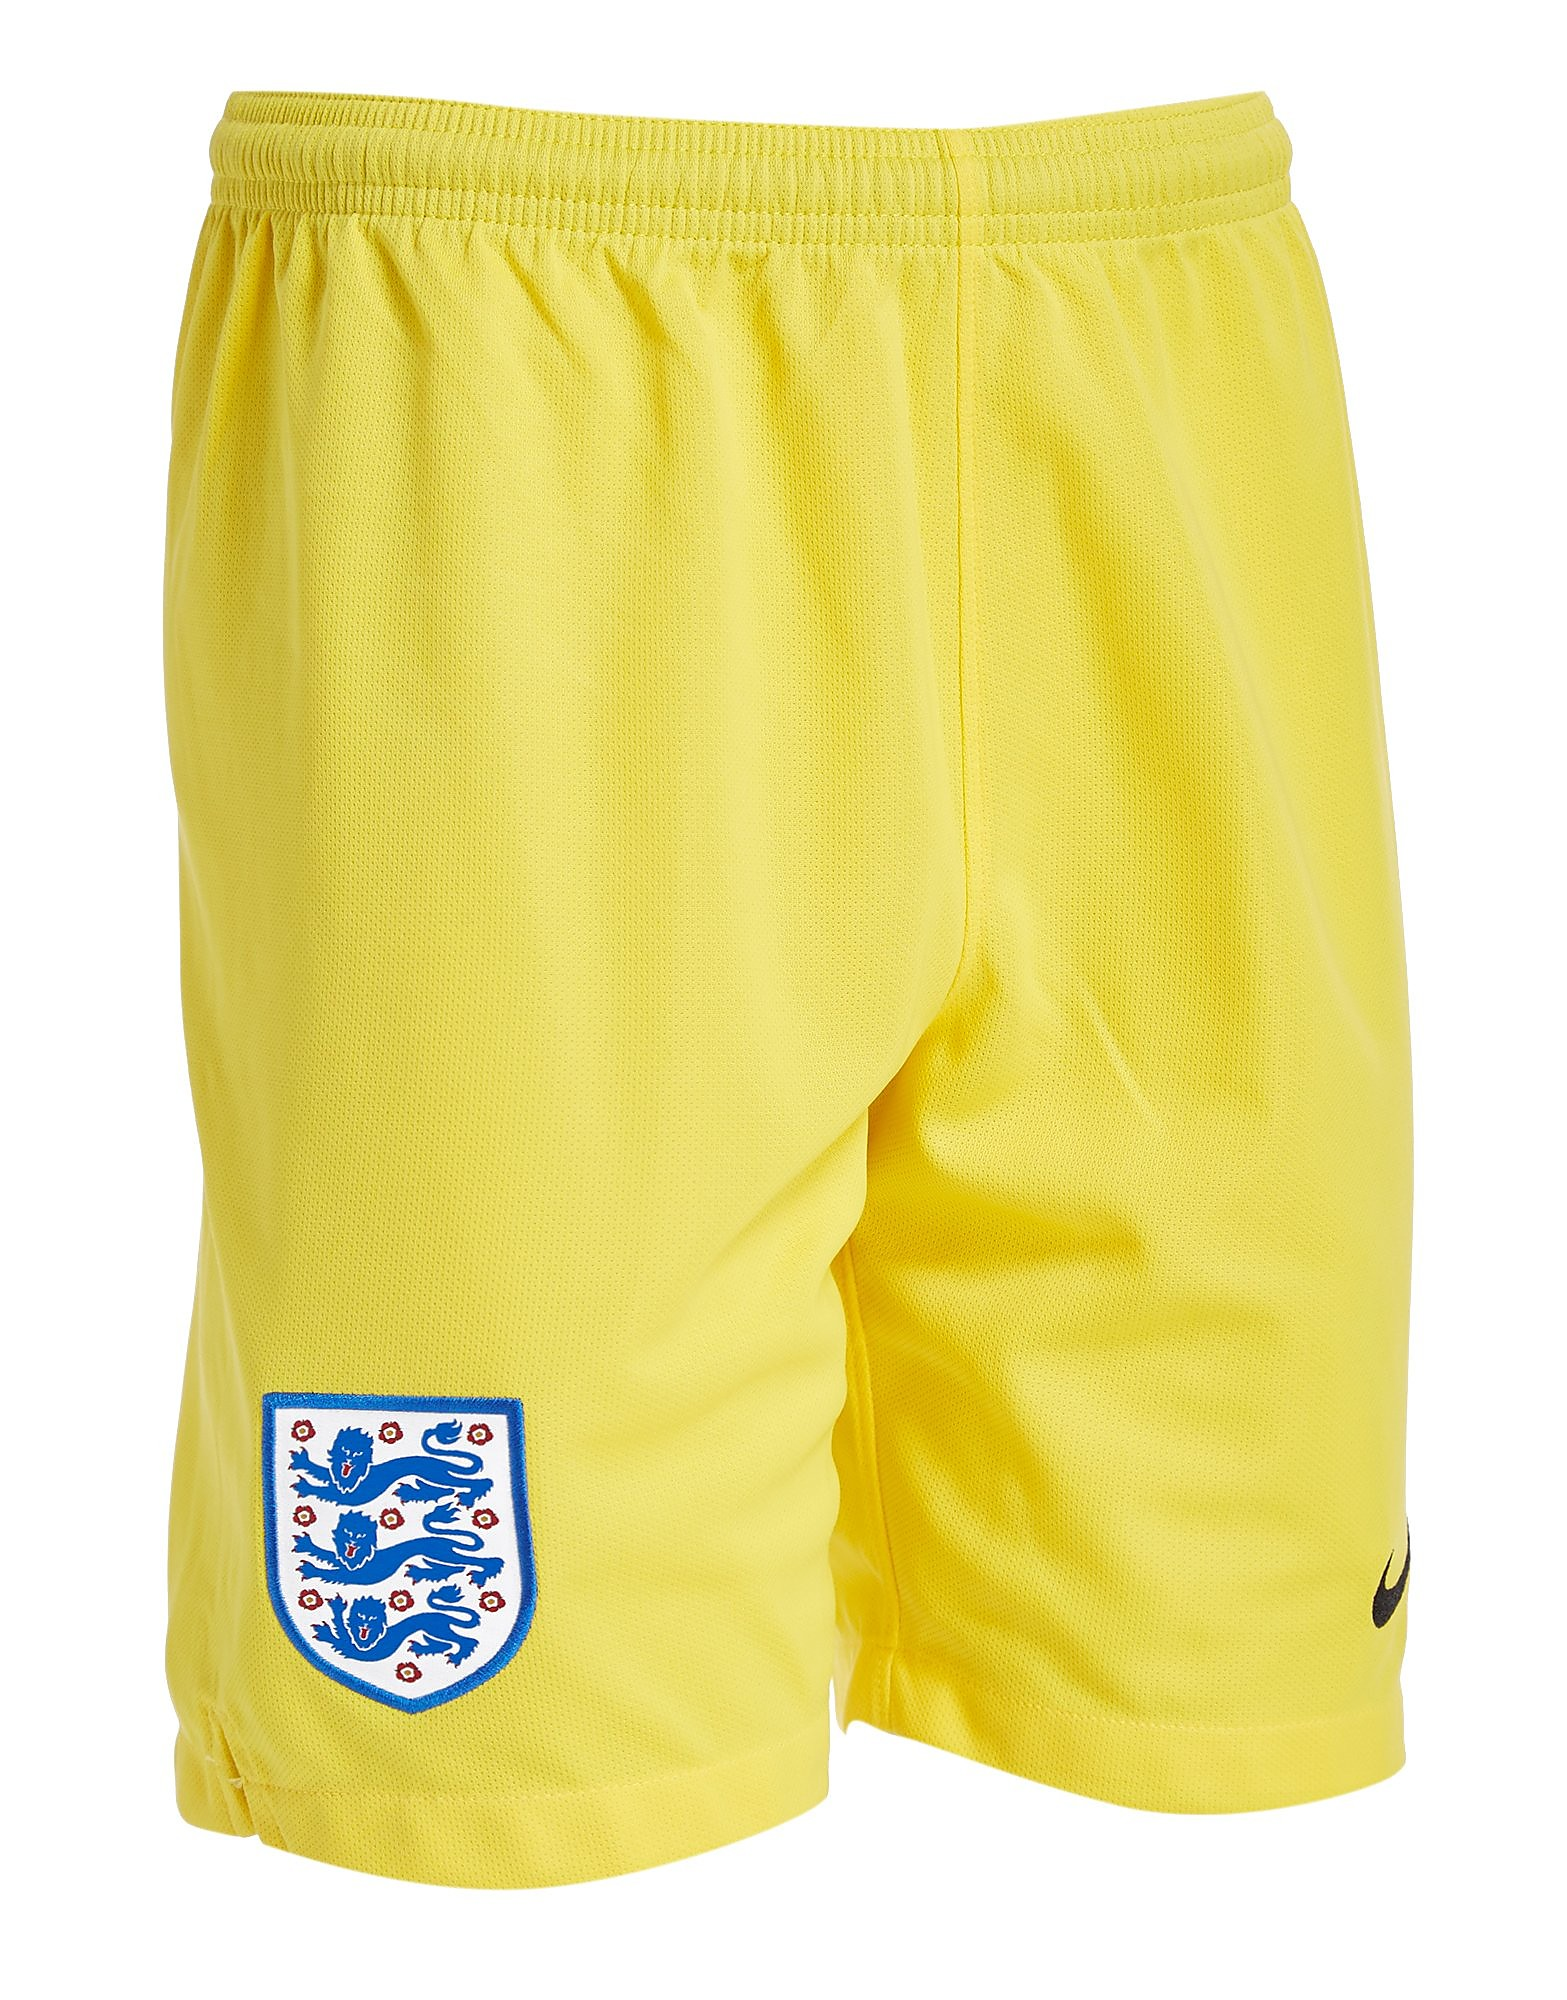 Nike Inghilterra 2018 Shorts Home da portiere Junior